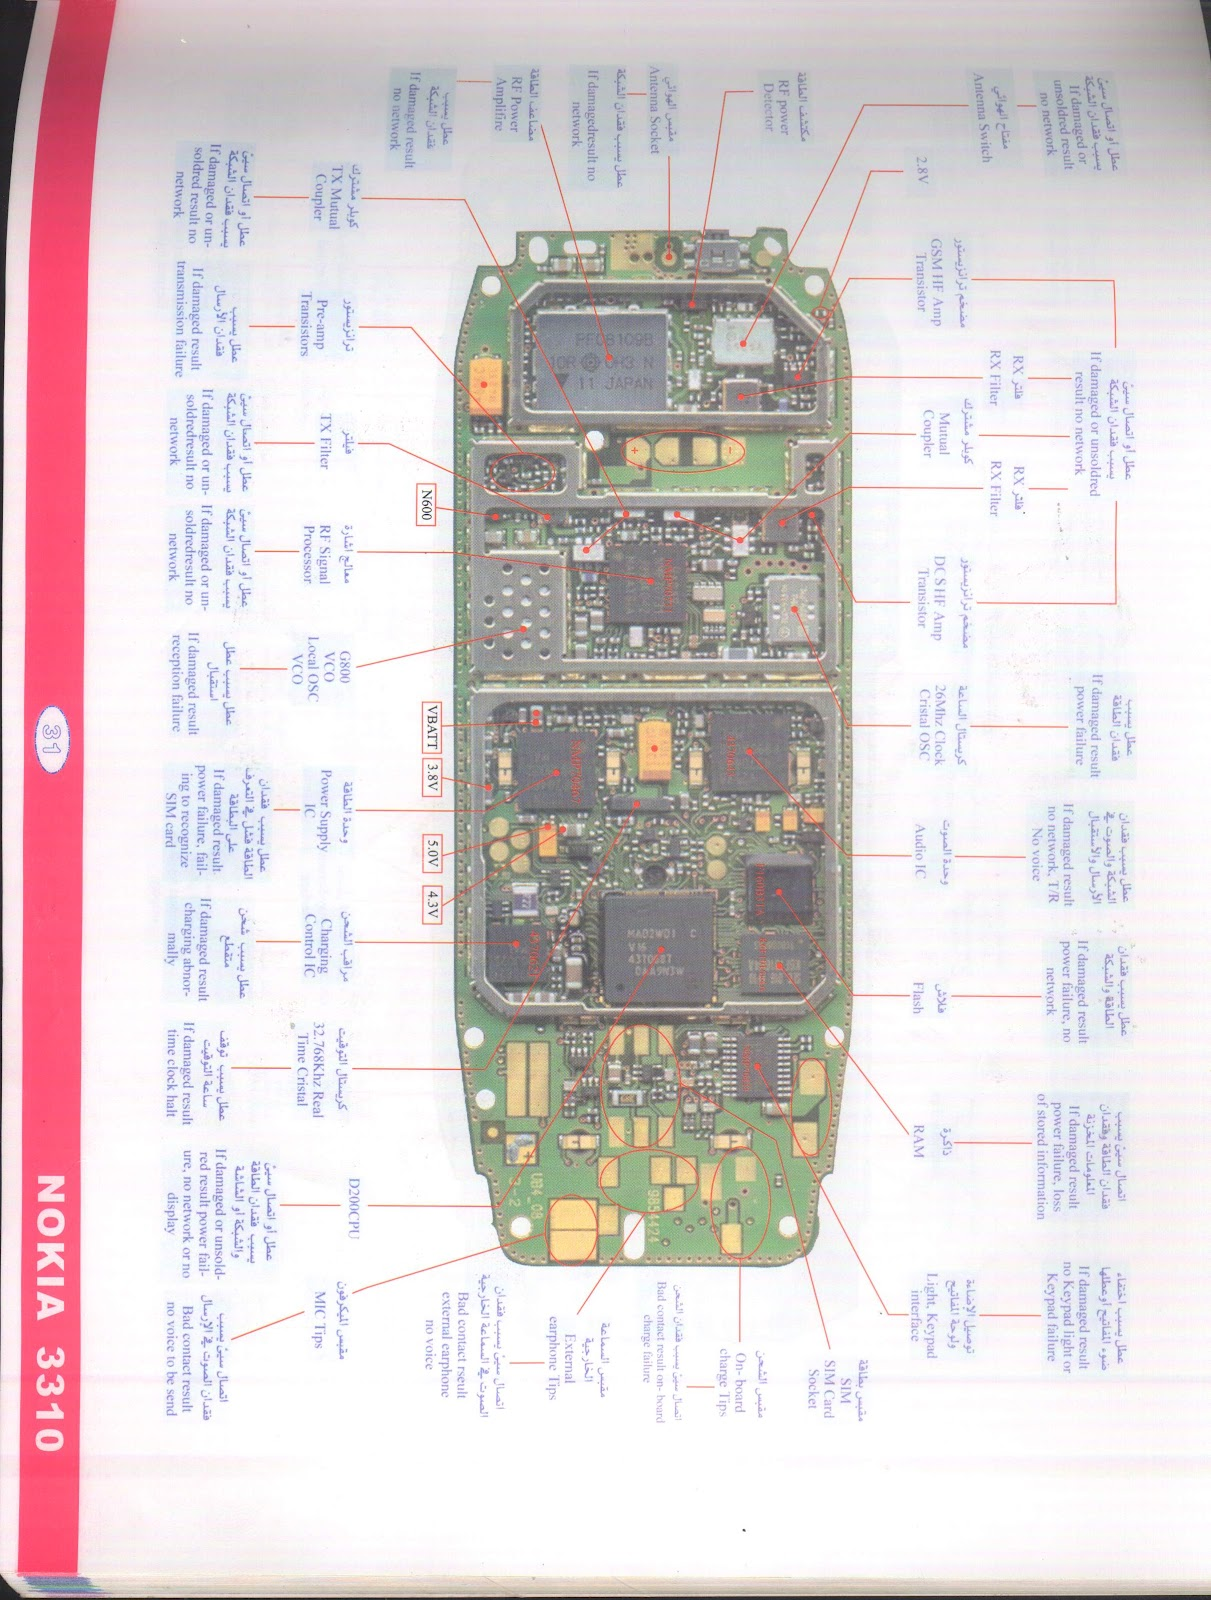 hight resolution of nokia 3210 circuit board details